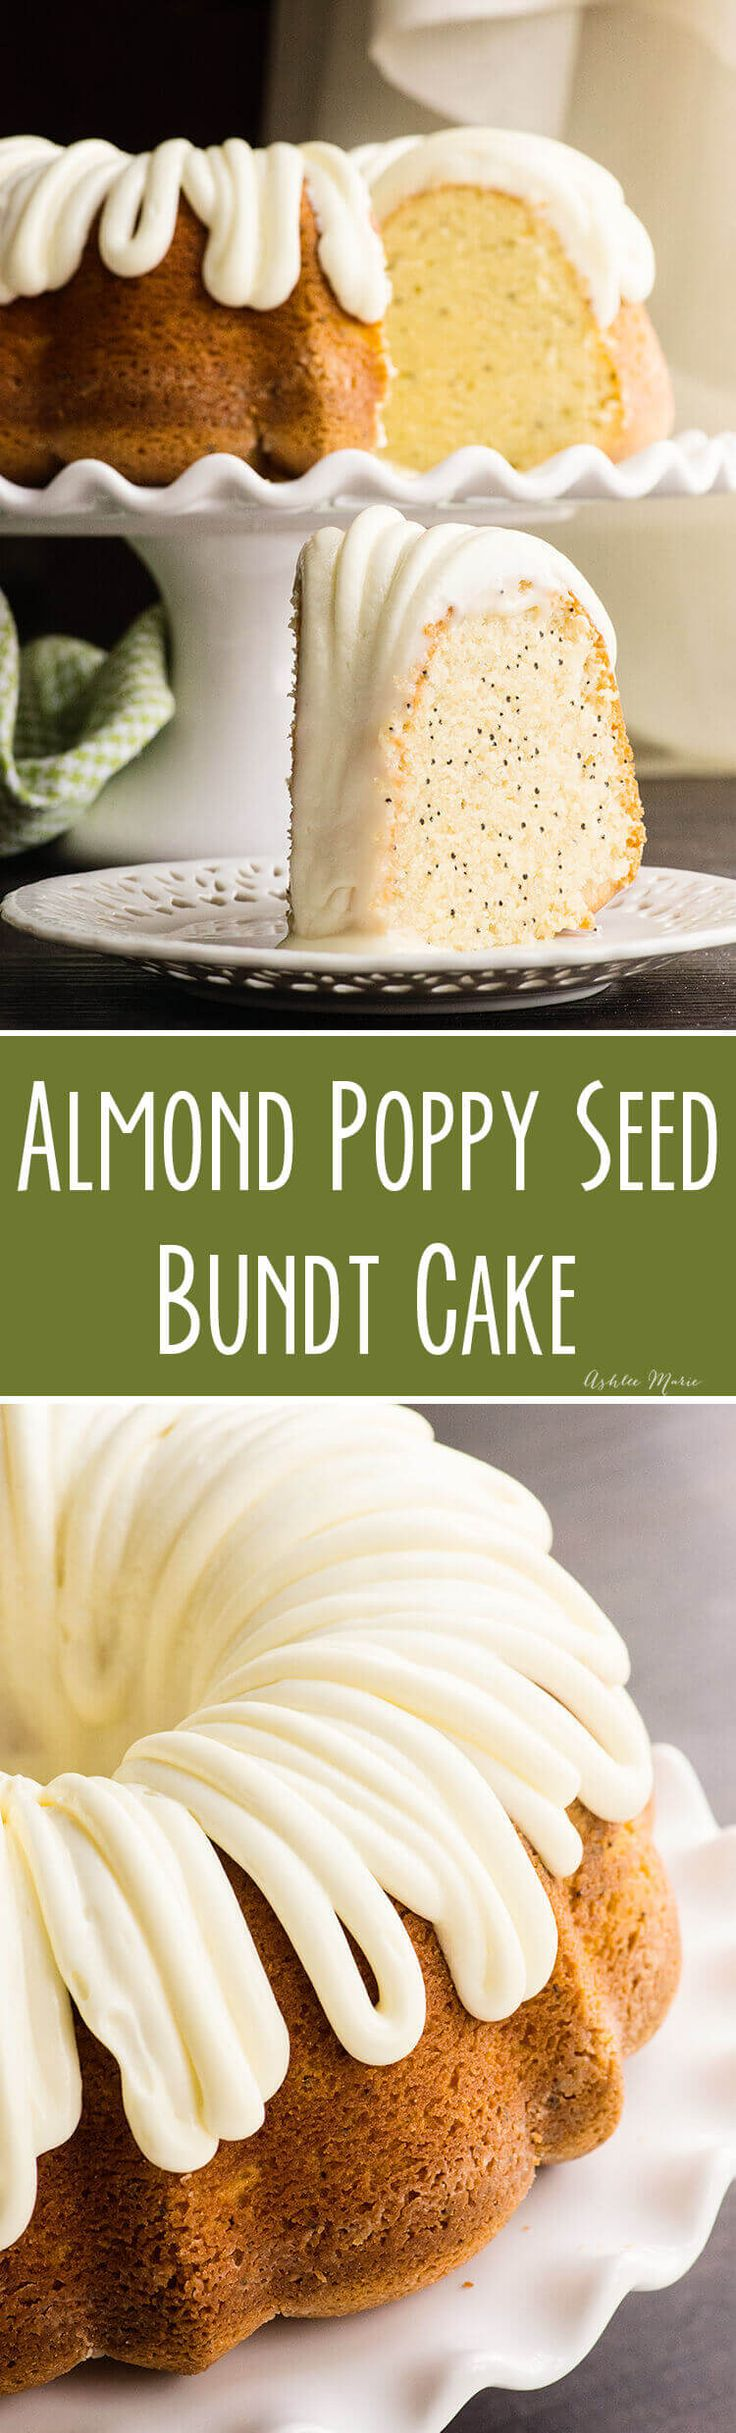 This almond poppyseed bundt cake is light and fluffy and has great texture and flavor - add the cream cheese frosting for a creamy sweet bite.